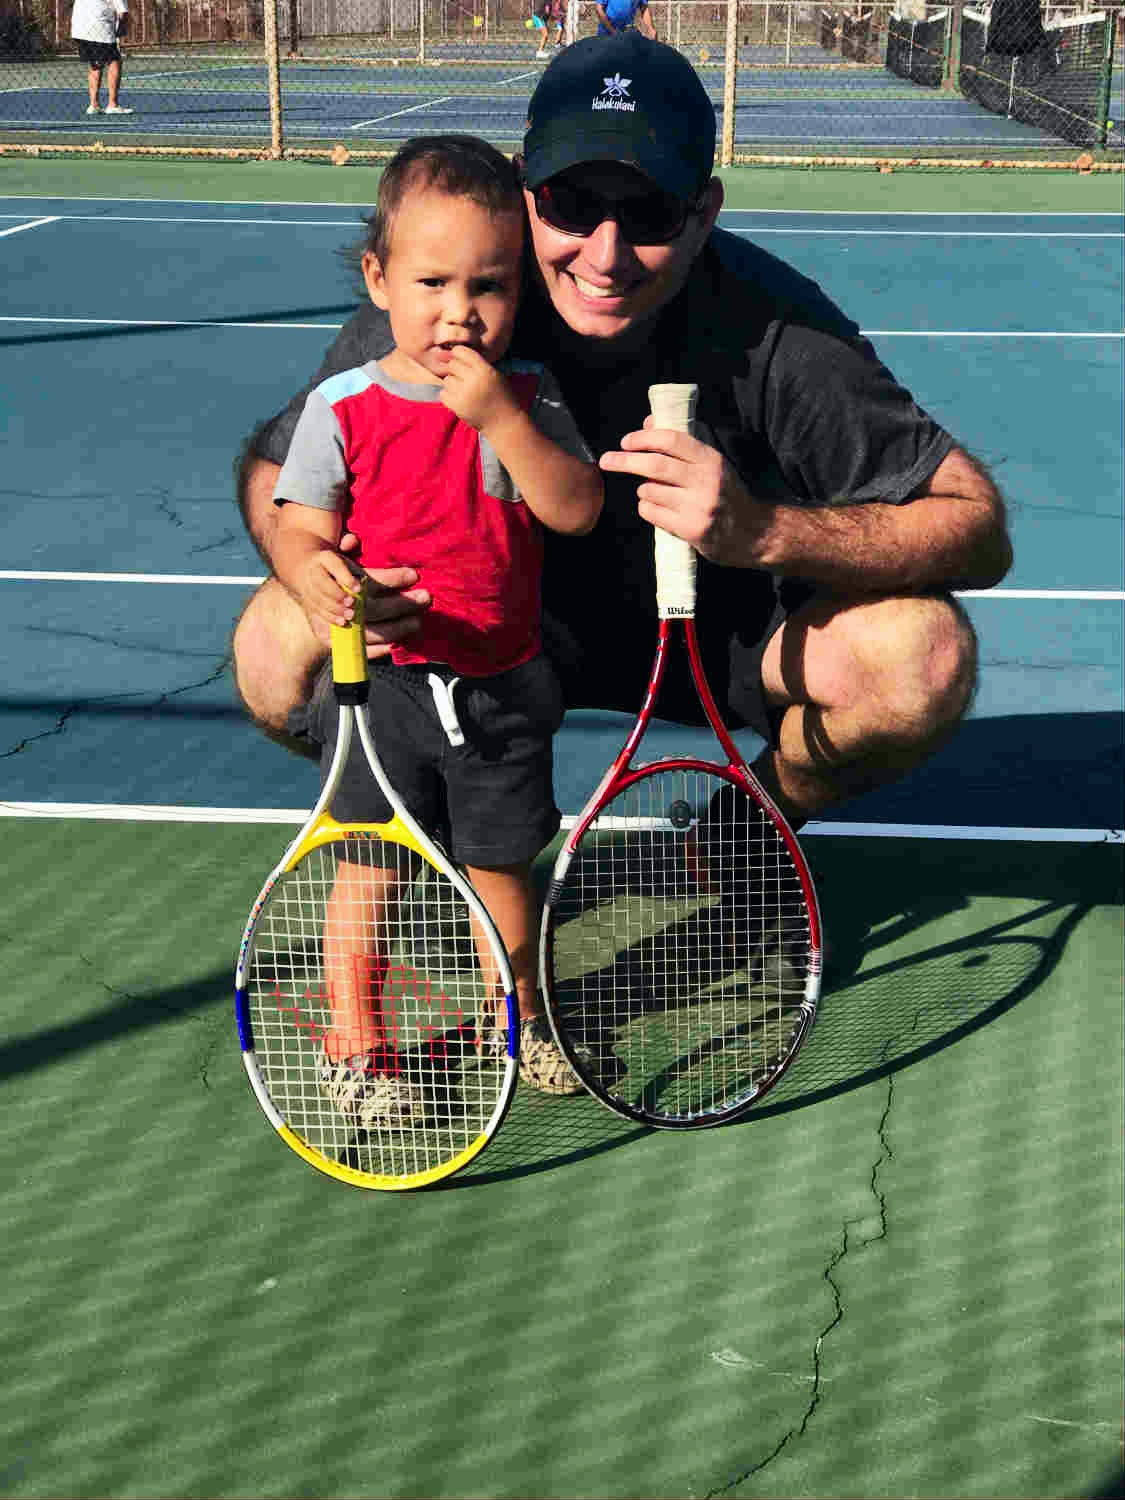 Honza H. teaches tennis lessons in Honolulu, HI